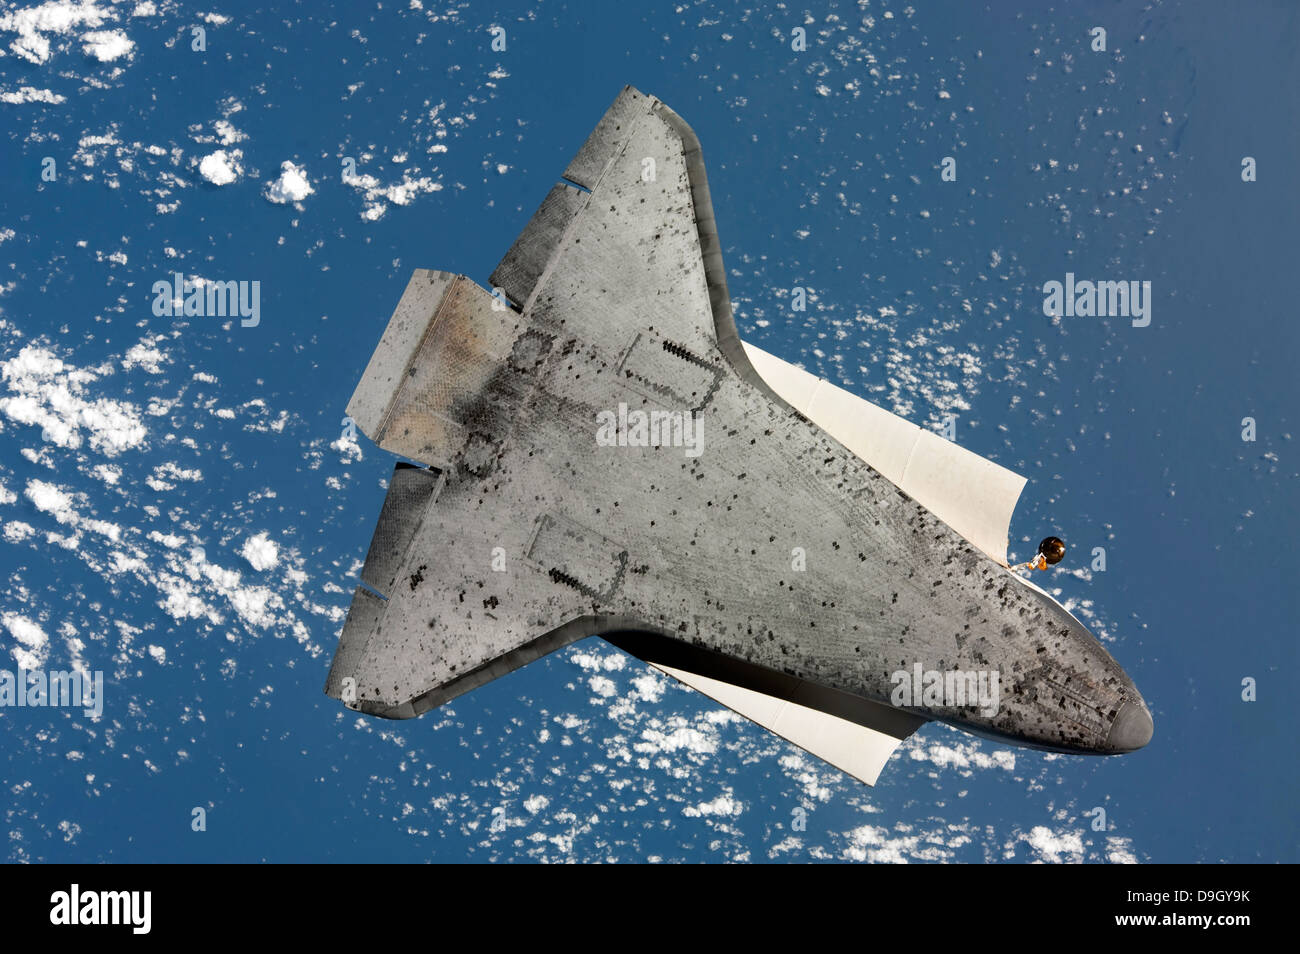 April 7, 2010 - The underside of space shuttle Discovery. - Stock Image